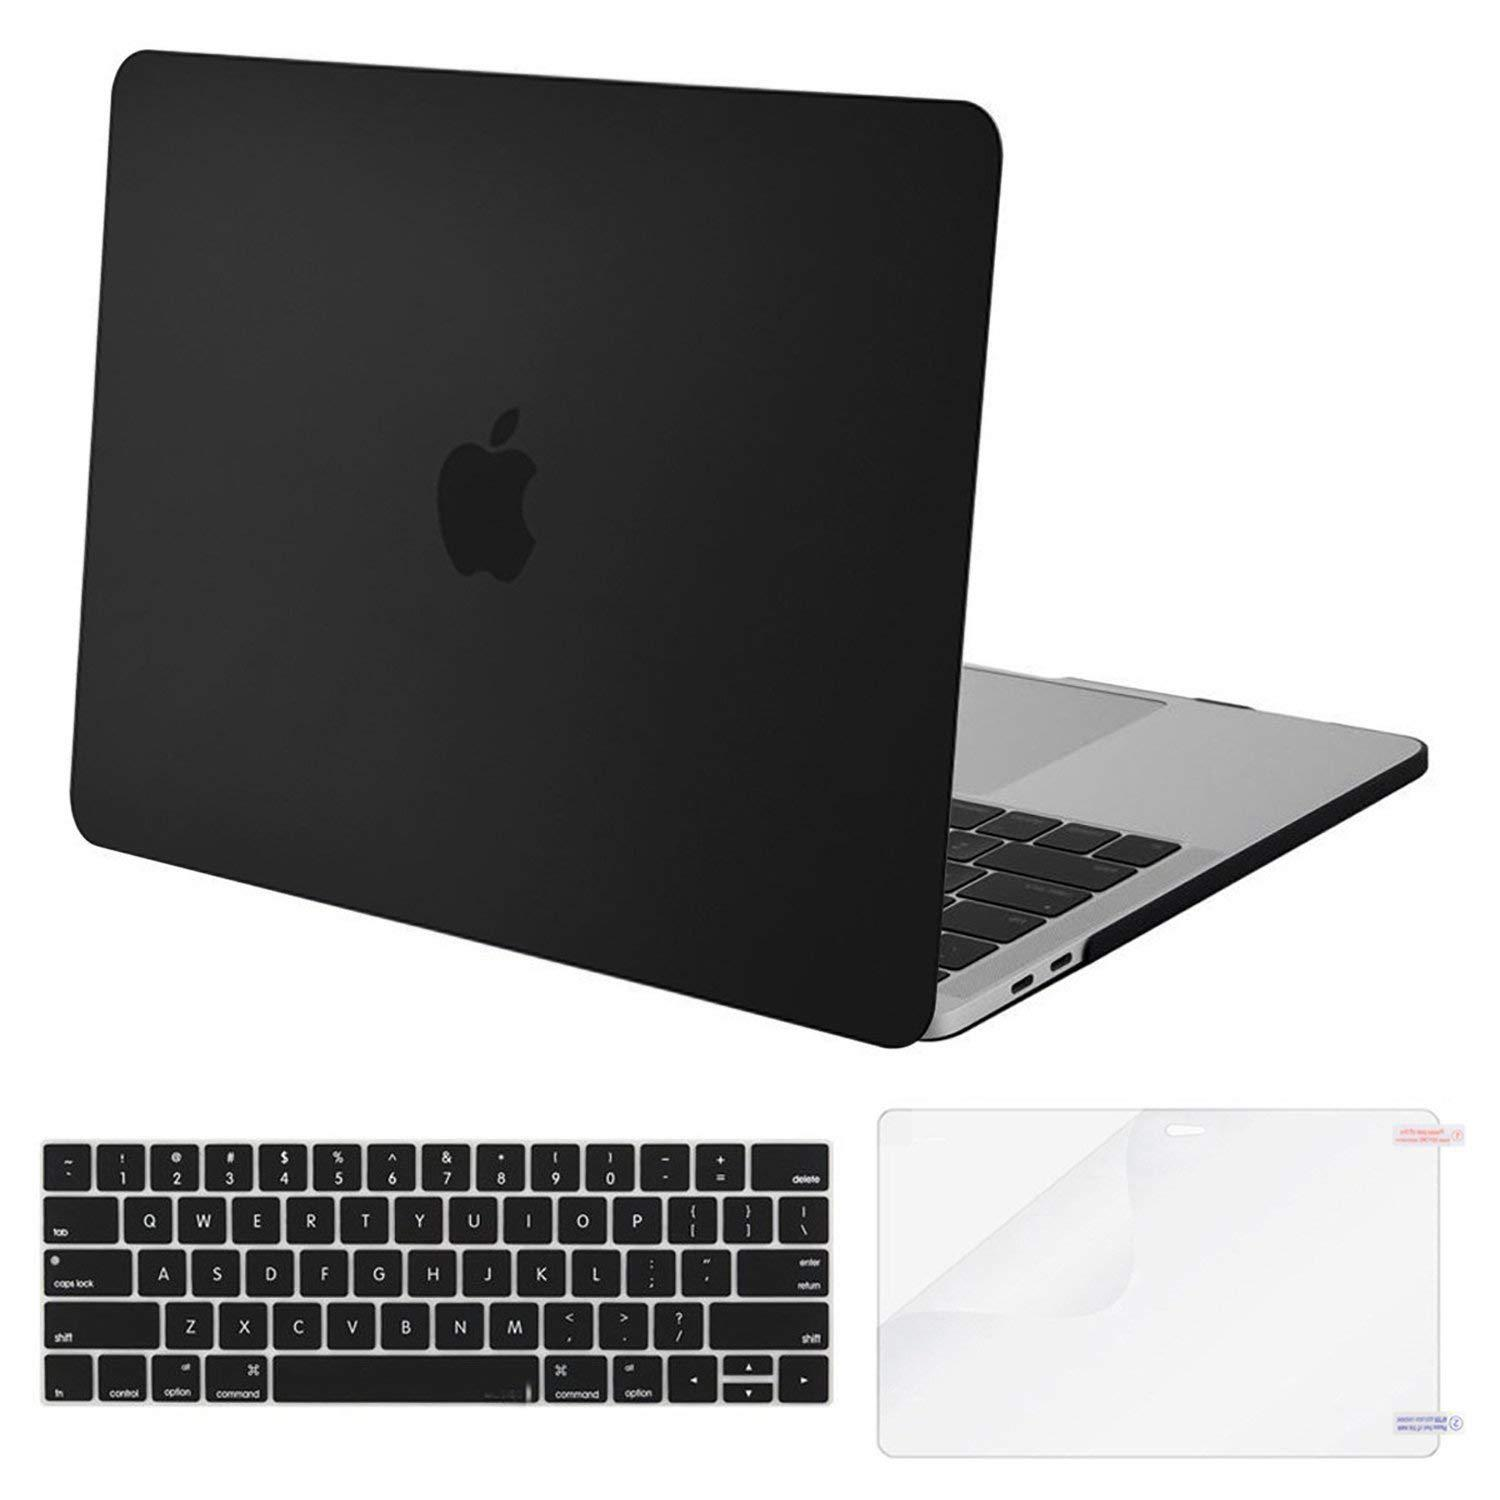 MoKo MacBook Pro 13 Case 2018/2017/2016, Slim PC Matte Frost Hard Shell Cover with Keyboard Cover with Screen Protector for Newest Release 2018/2017/2016 MacBook Pro 13 inch A1706 / A1708